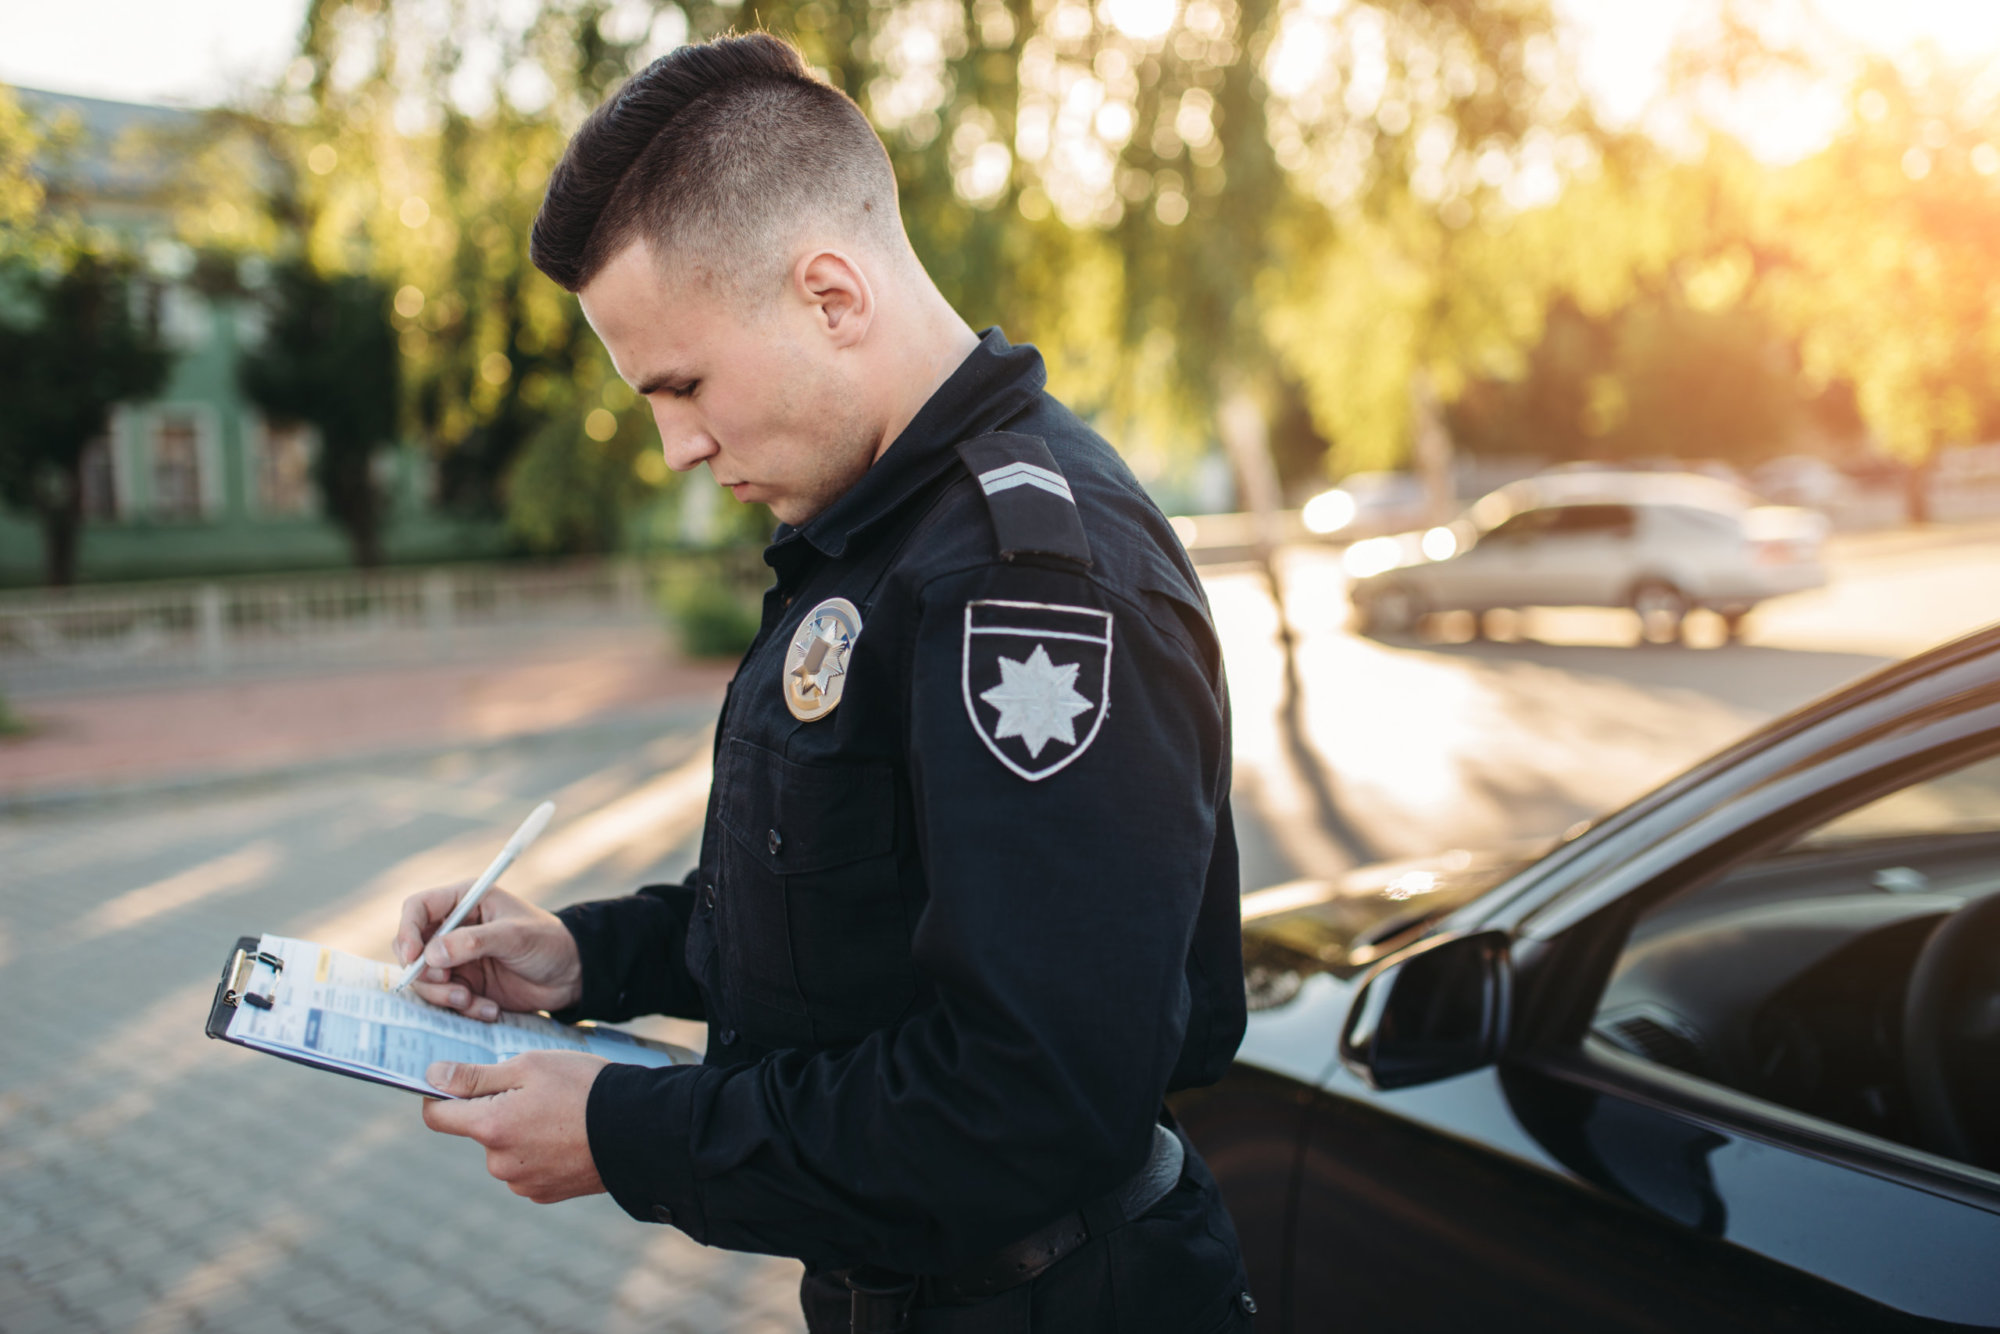 Creative Security provides high quality police background checks